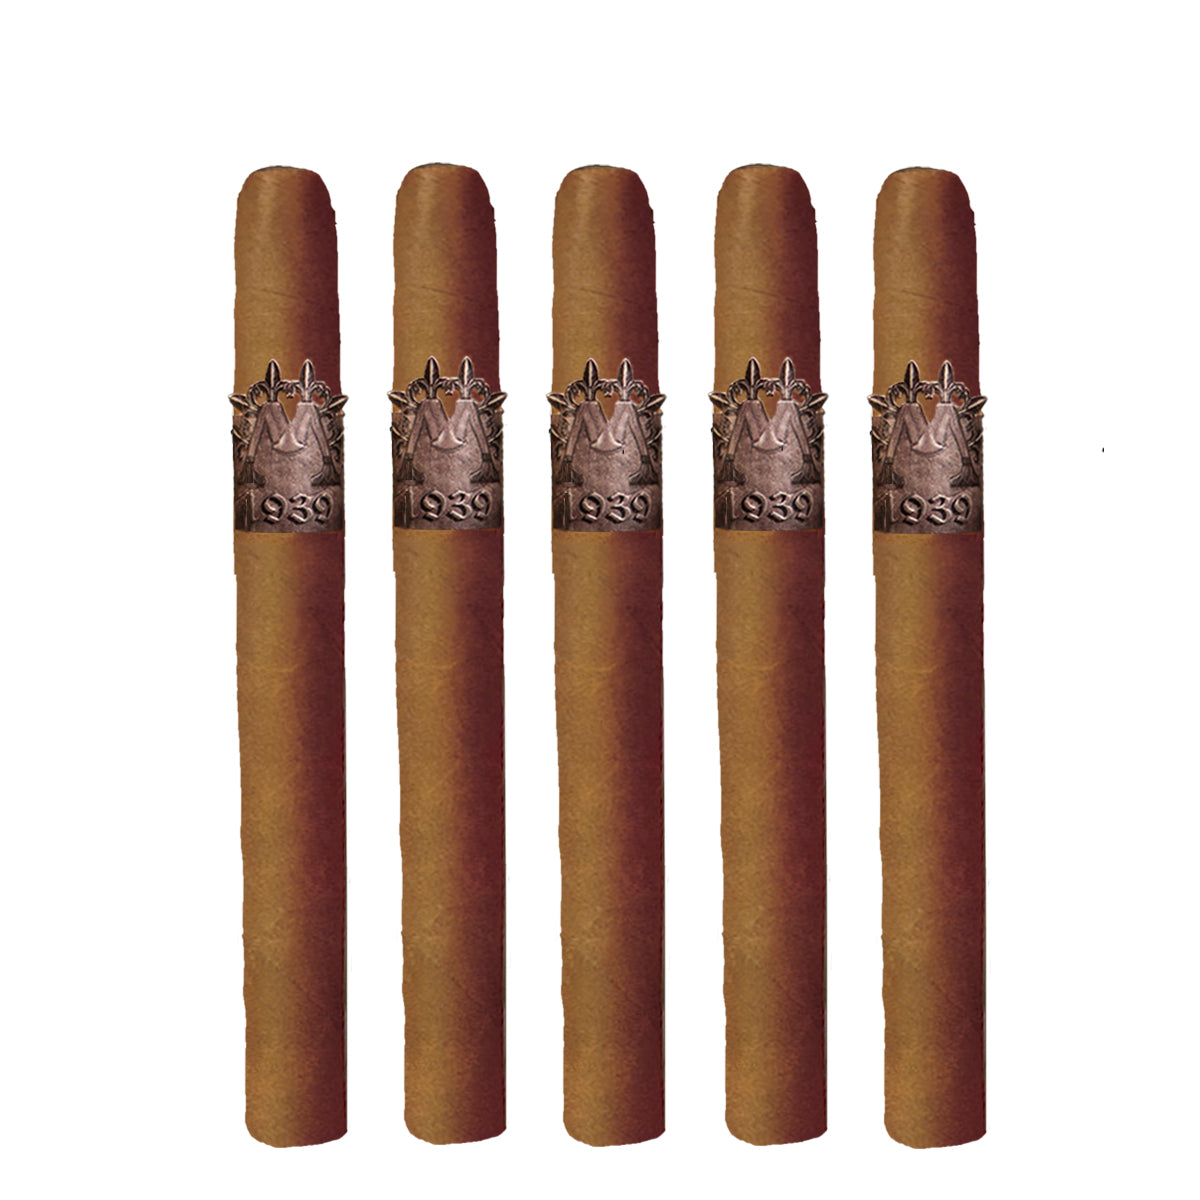 5 The Influencer Cigars